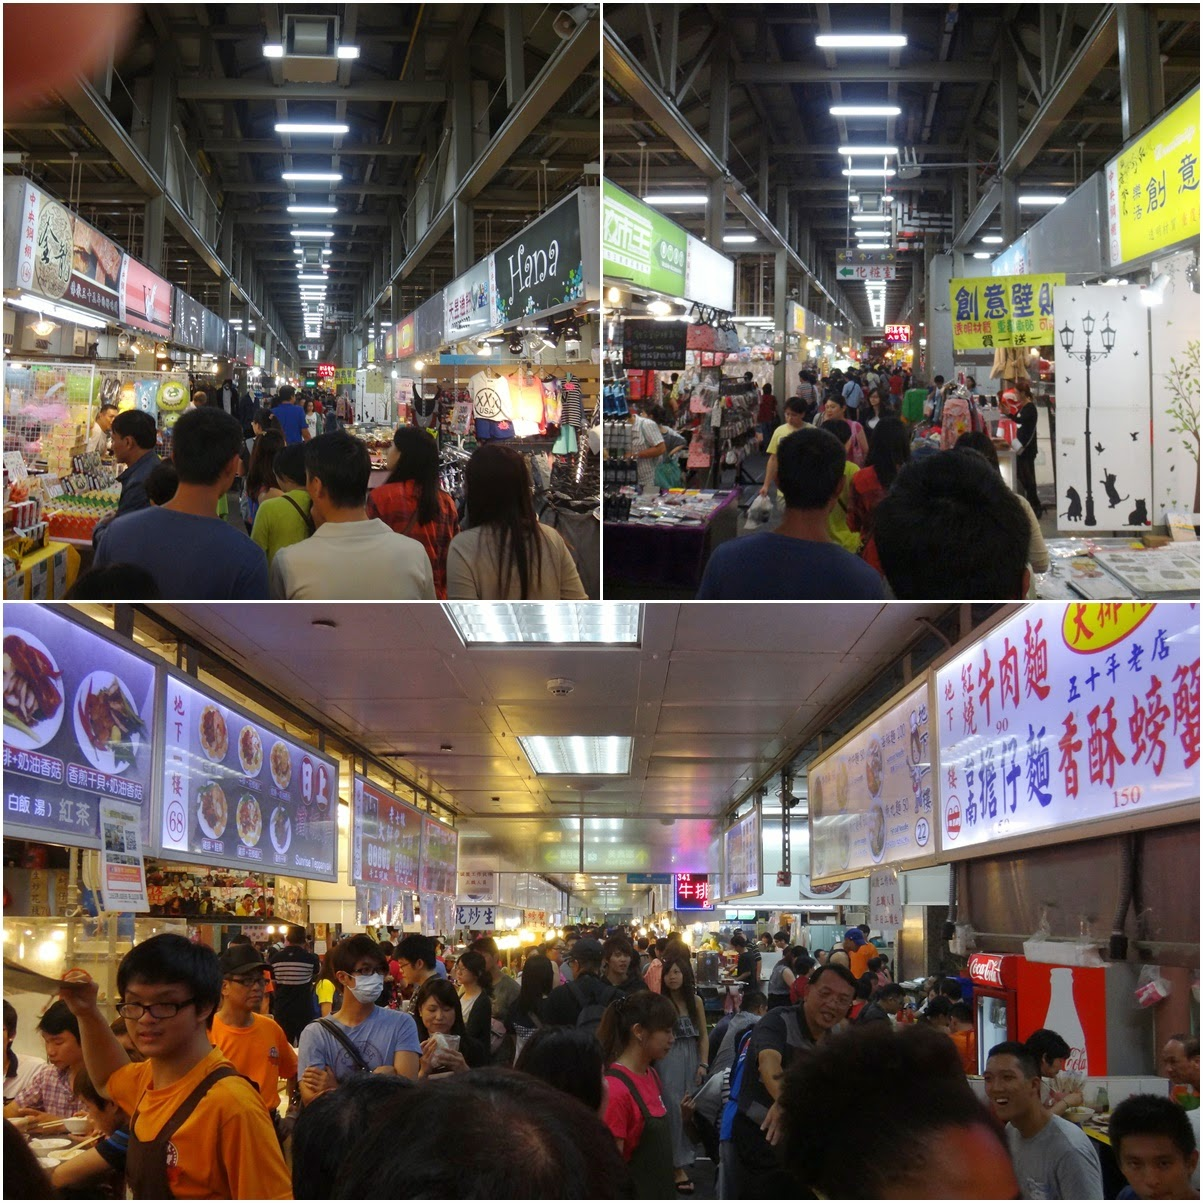 Shopping for food, clothing, souvenirs, decorative items and anything that you can find from these vendors at Shilin Night Market in Taipei, Taiwan